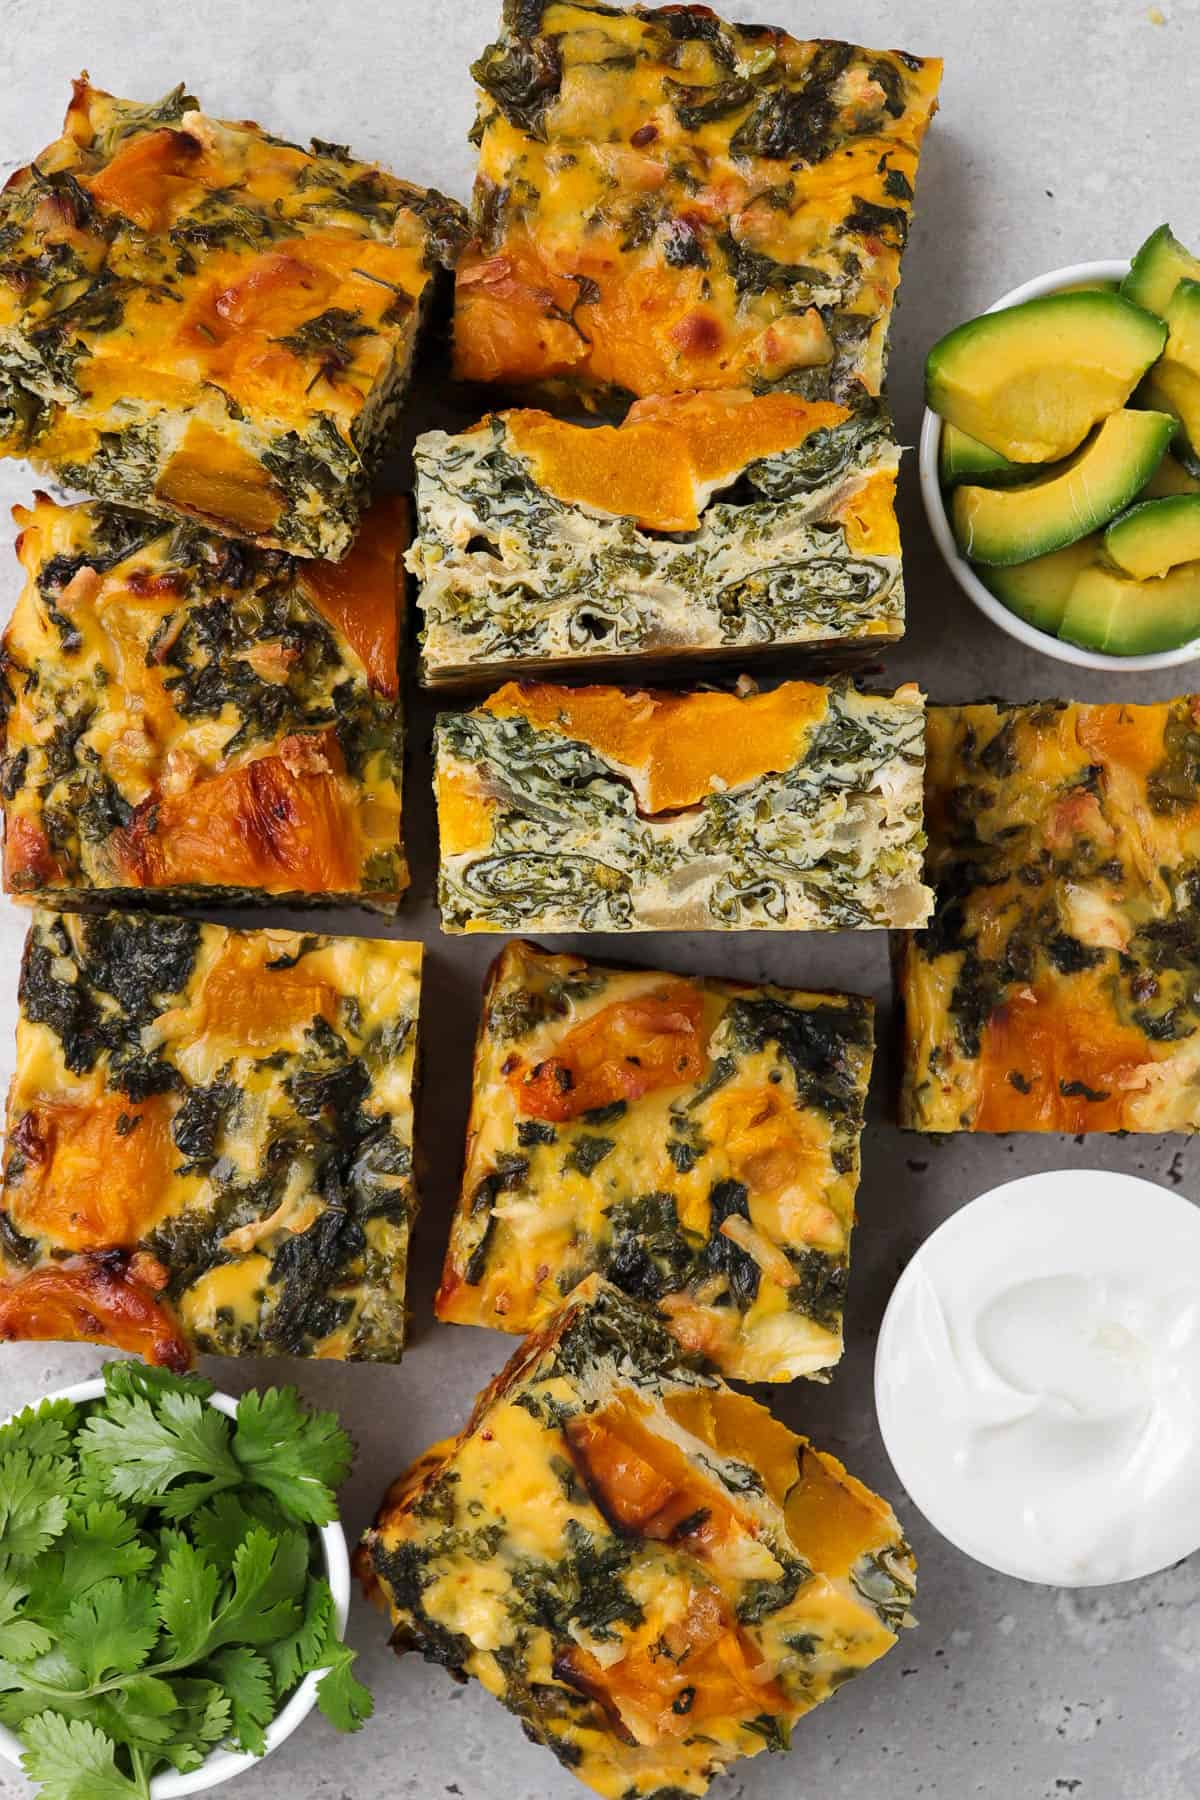 Frittata cut into slices. Avocado, coriander leaves and yoghurt on the side for garnish.